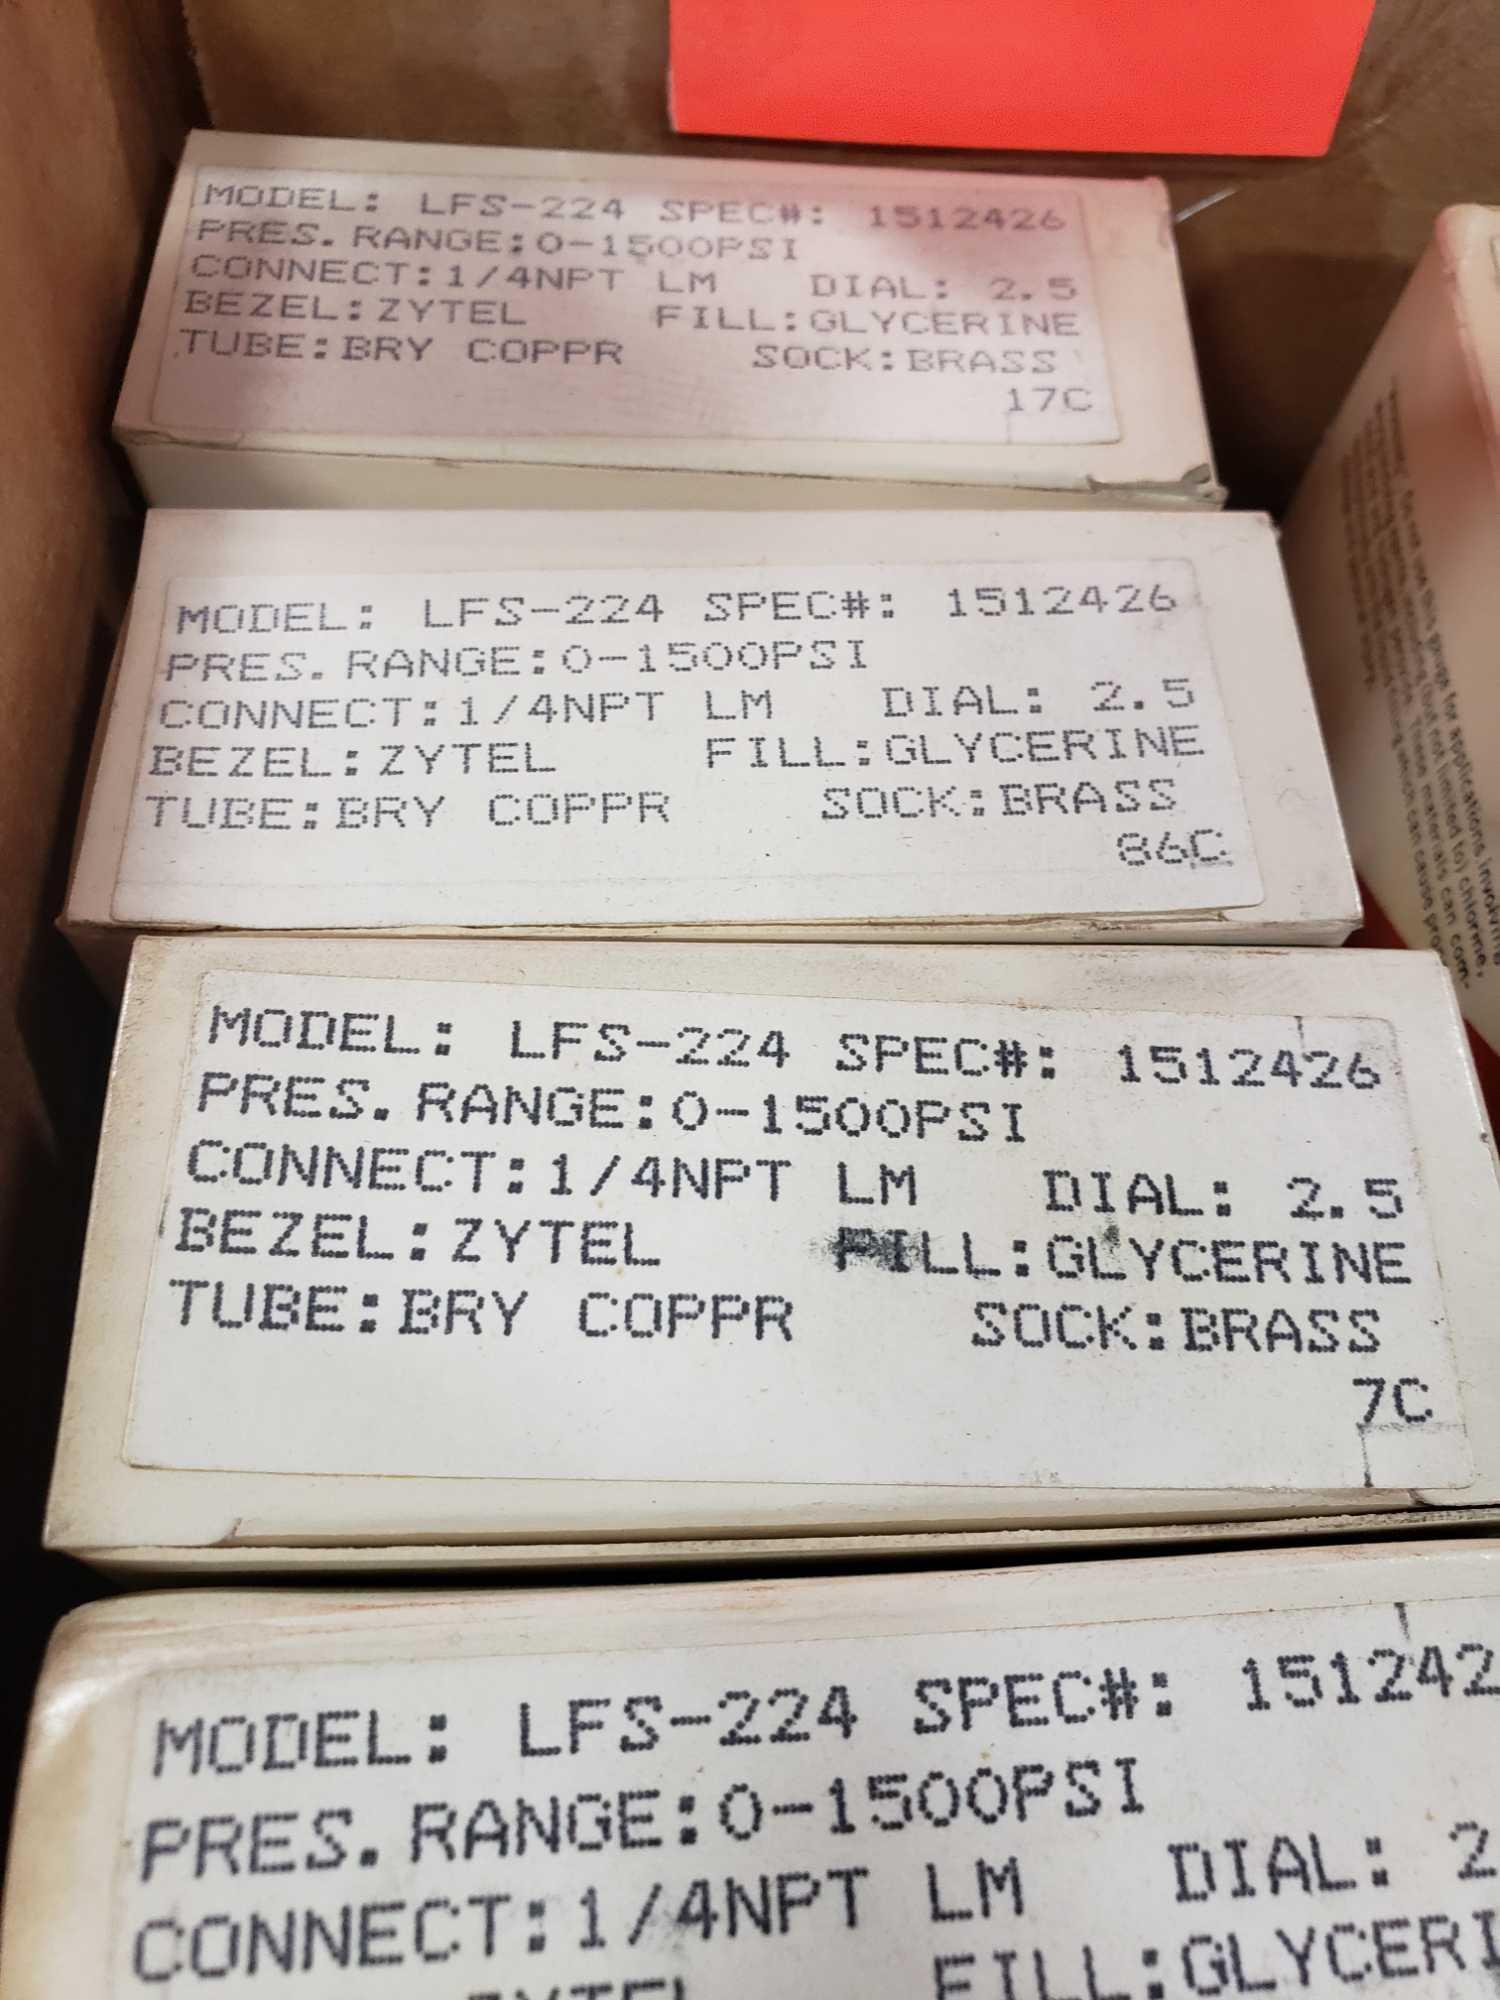 Qty 10 - Span gauges model LFS-224 pressure range 0-1500psi. New in boxes. - Image 2 of 2